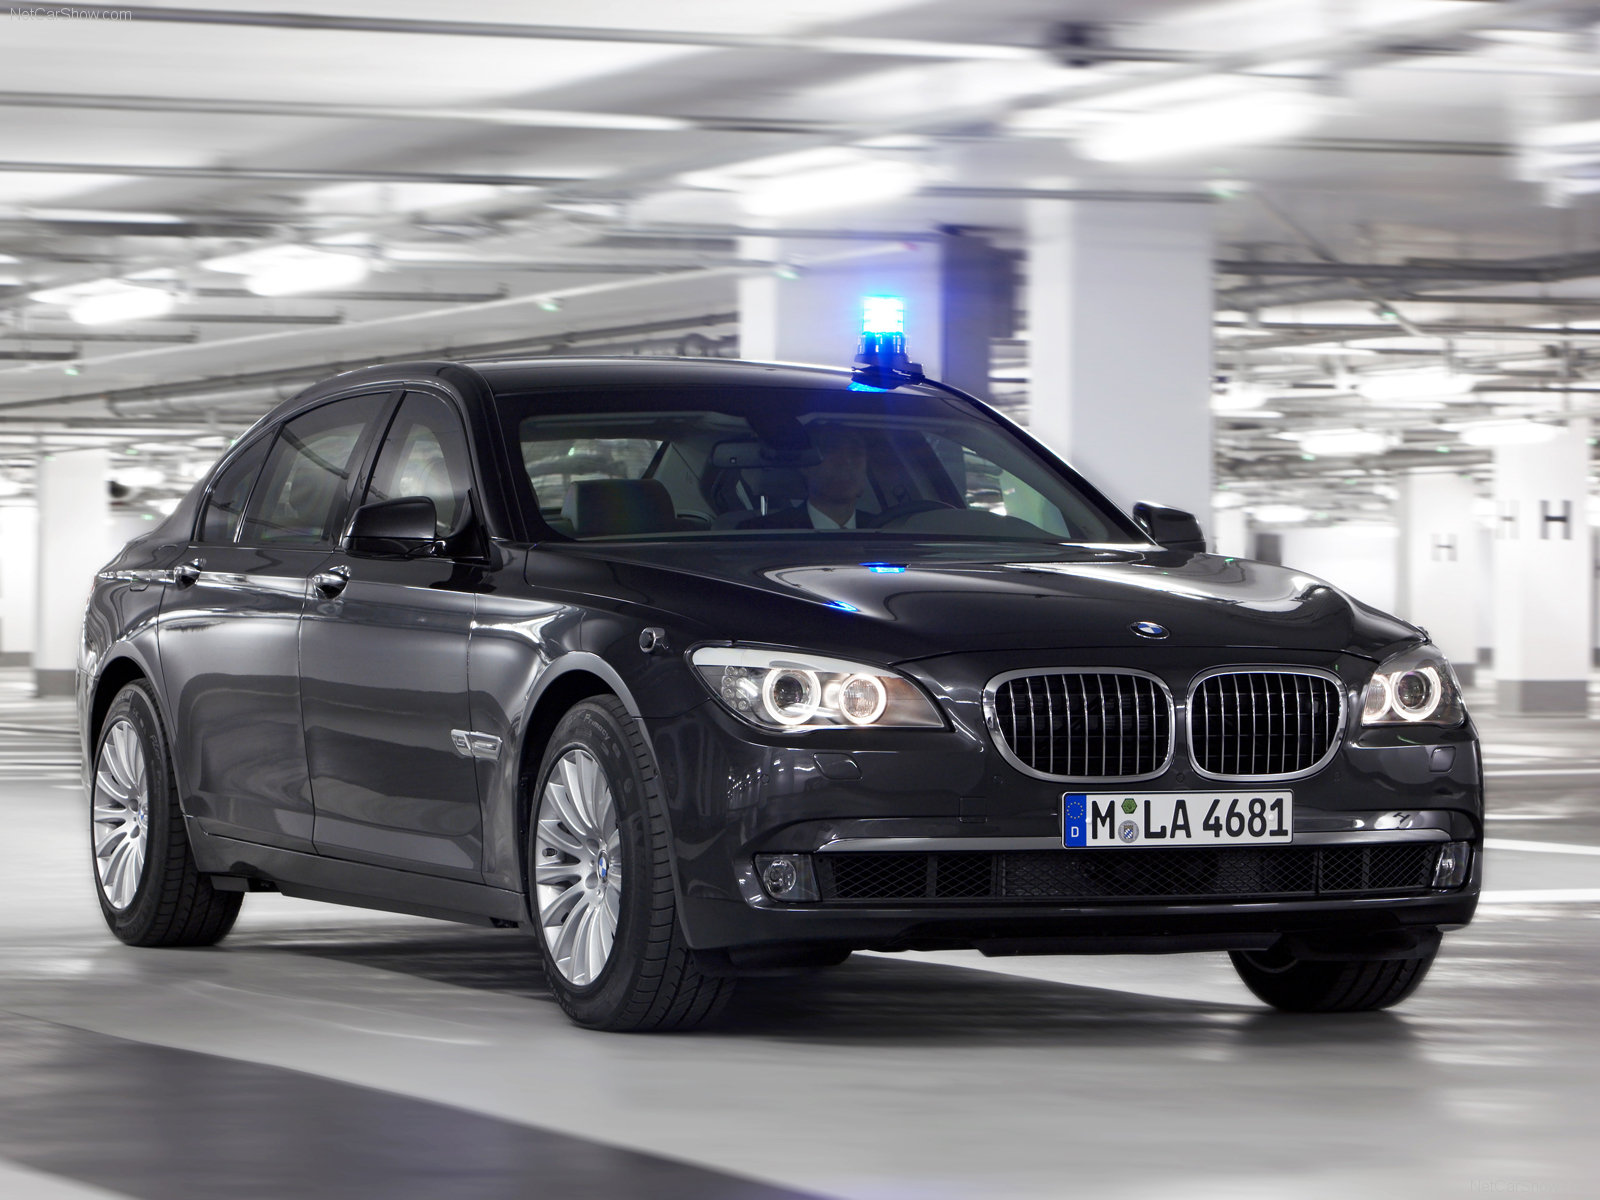 Welcome To The World of Cars: BMW 7-Series High Security sedans